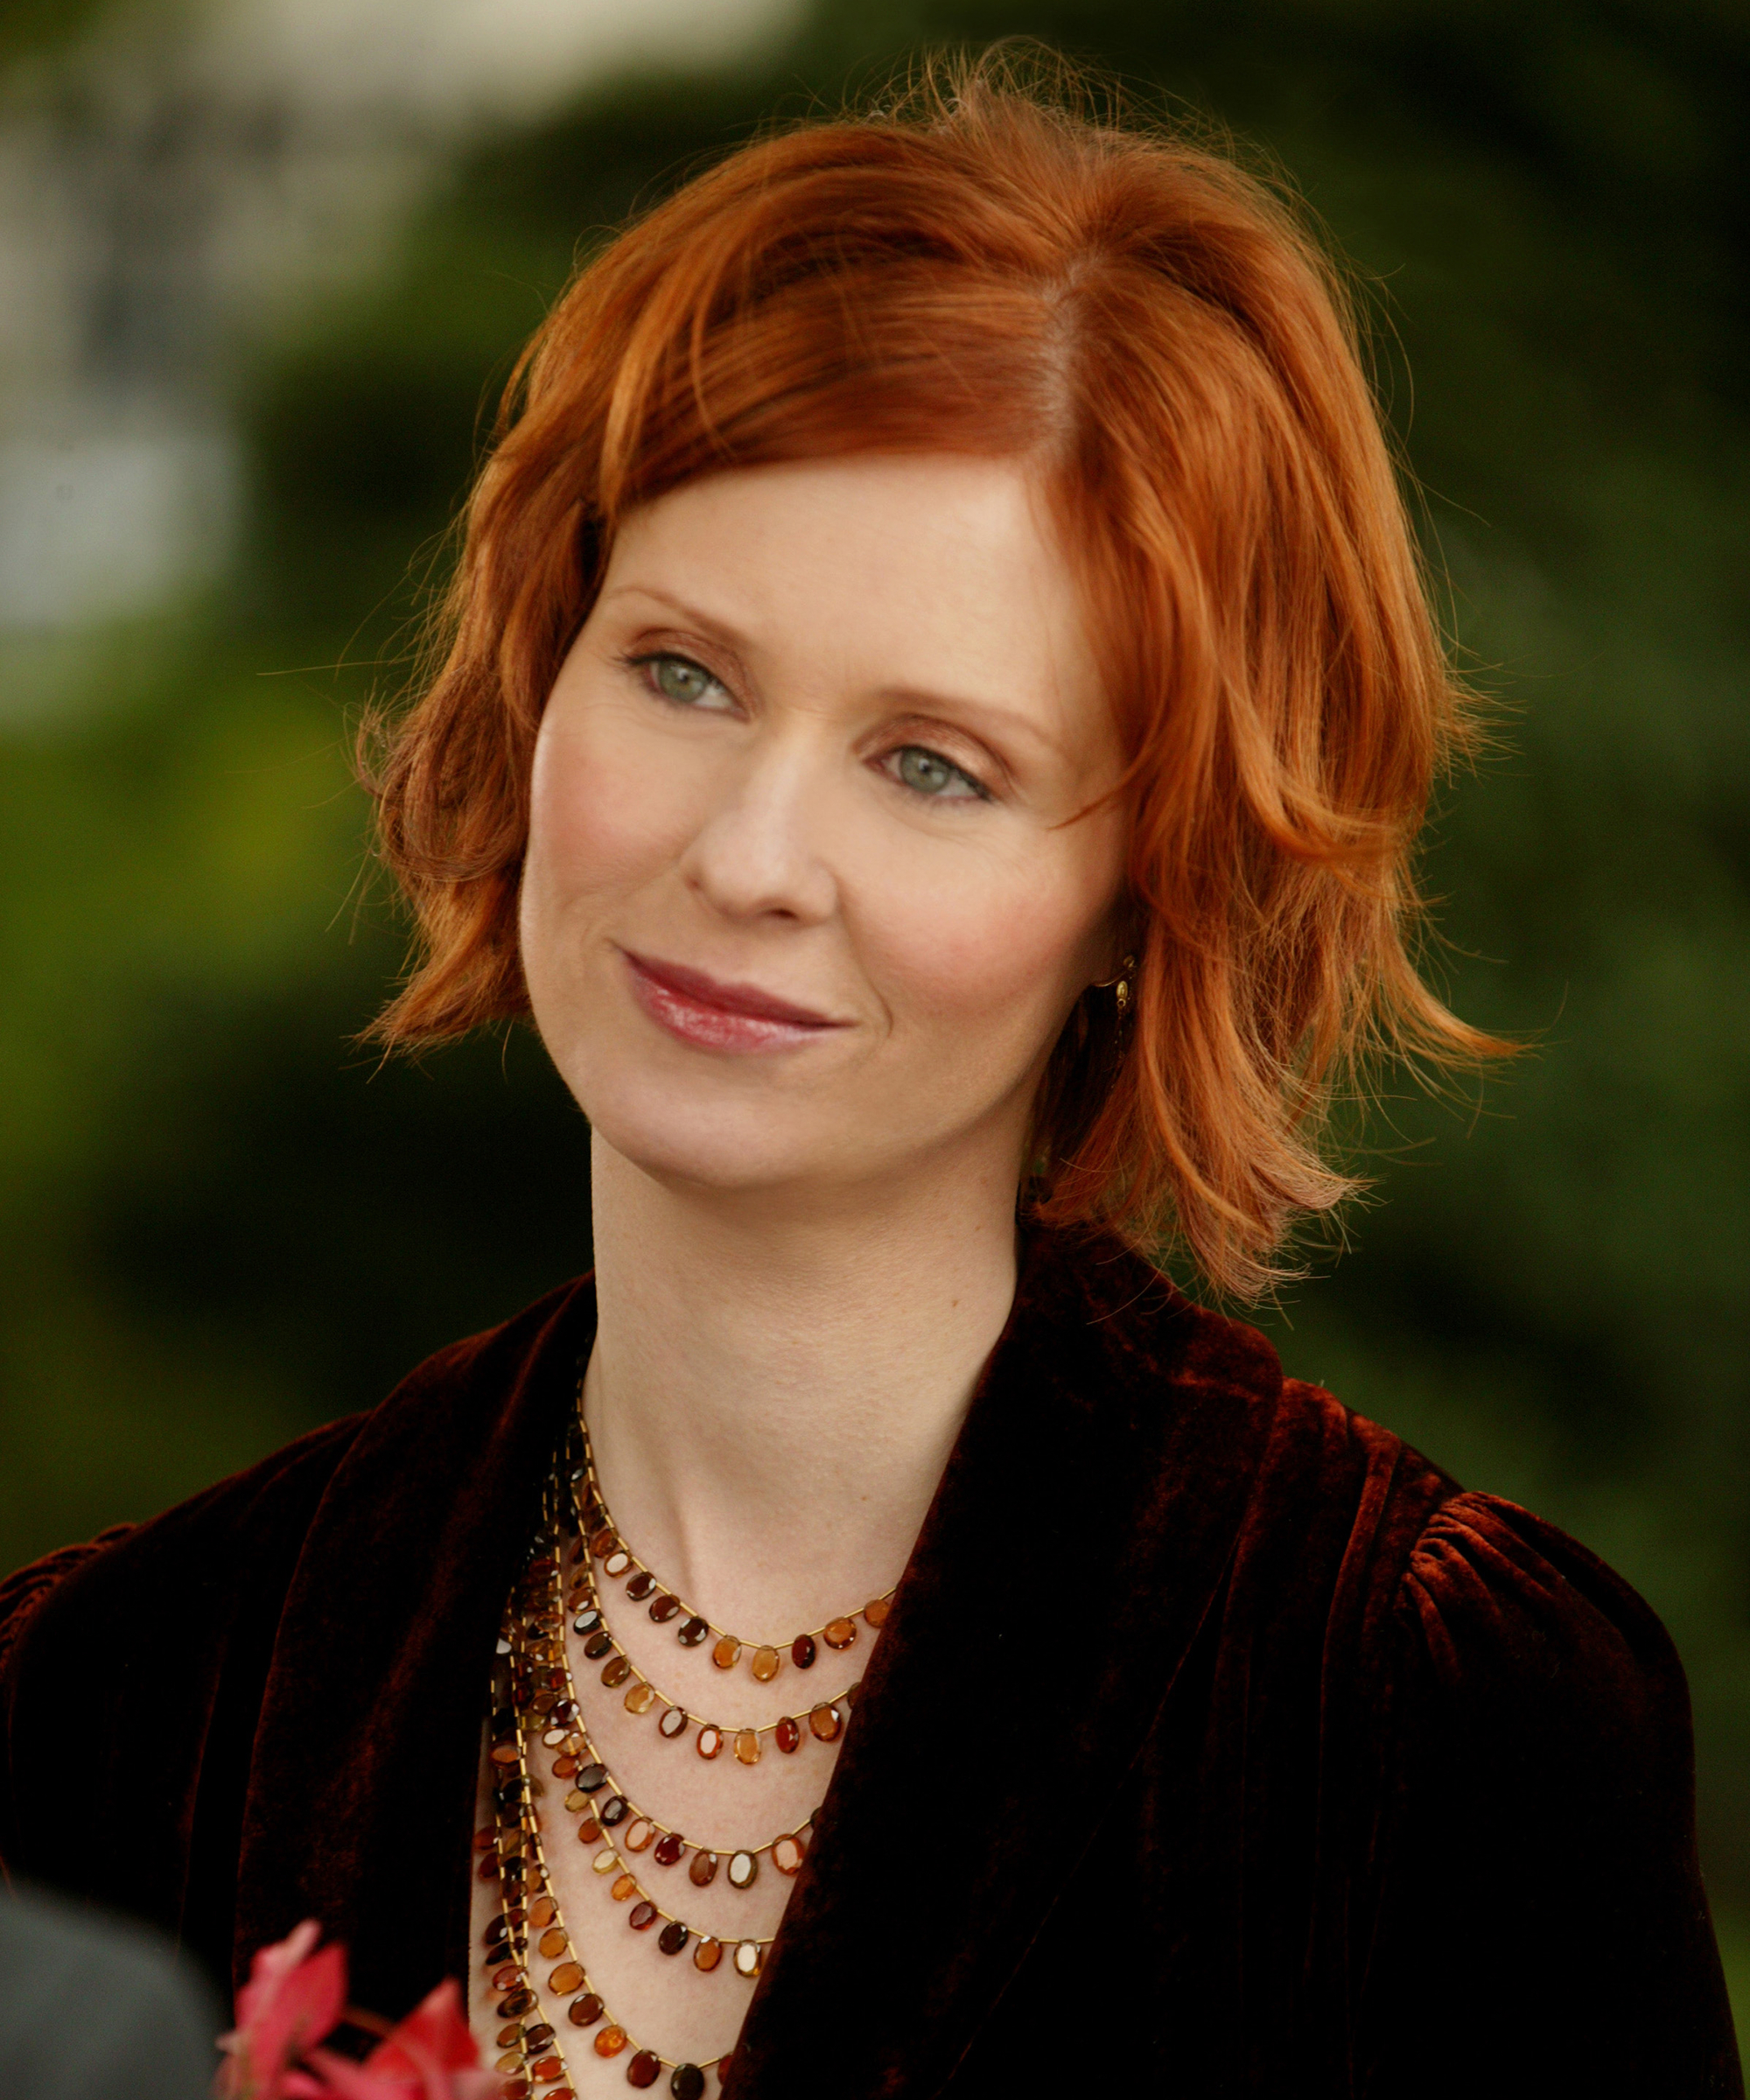 miranda hobbes sex and the city